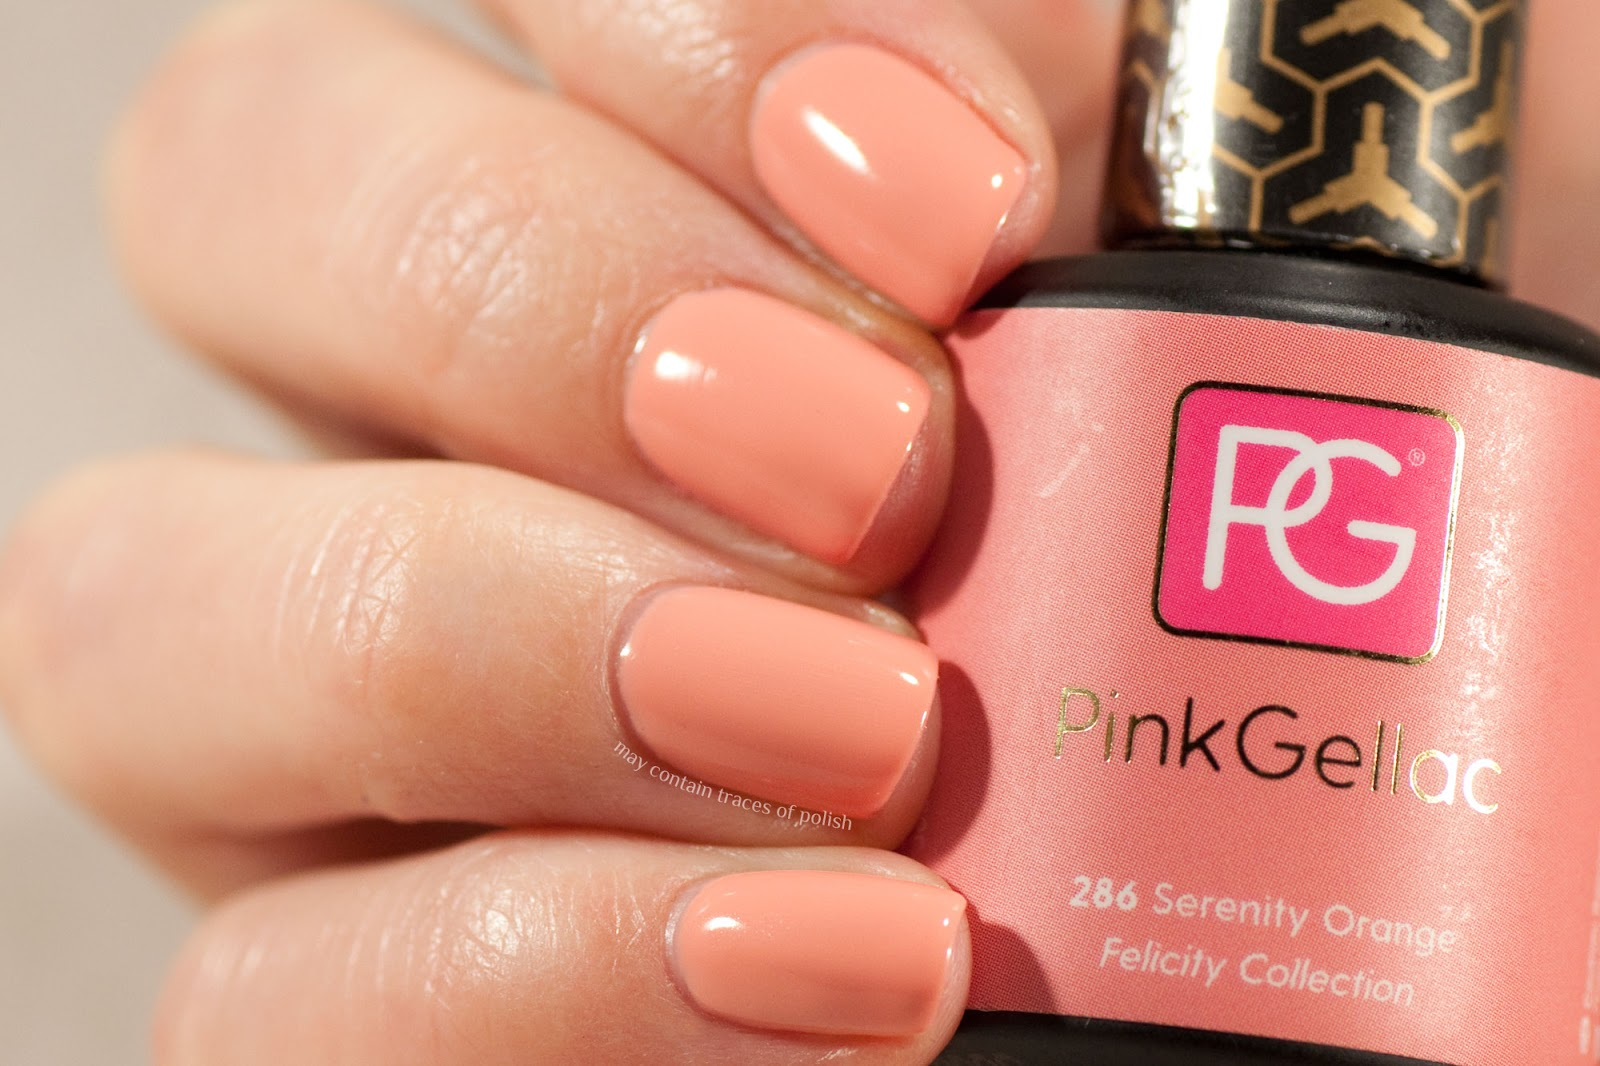 Pink Gellac 286 Serenity Orange Felicity Collection